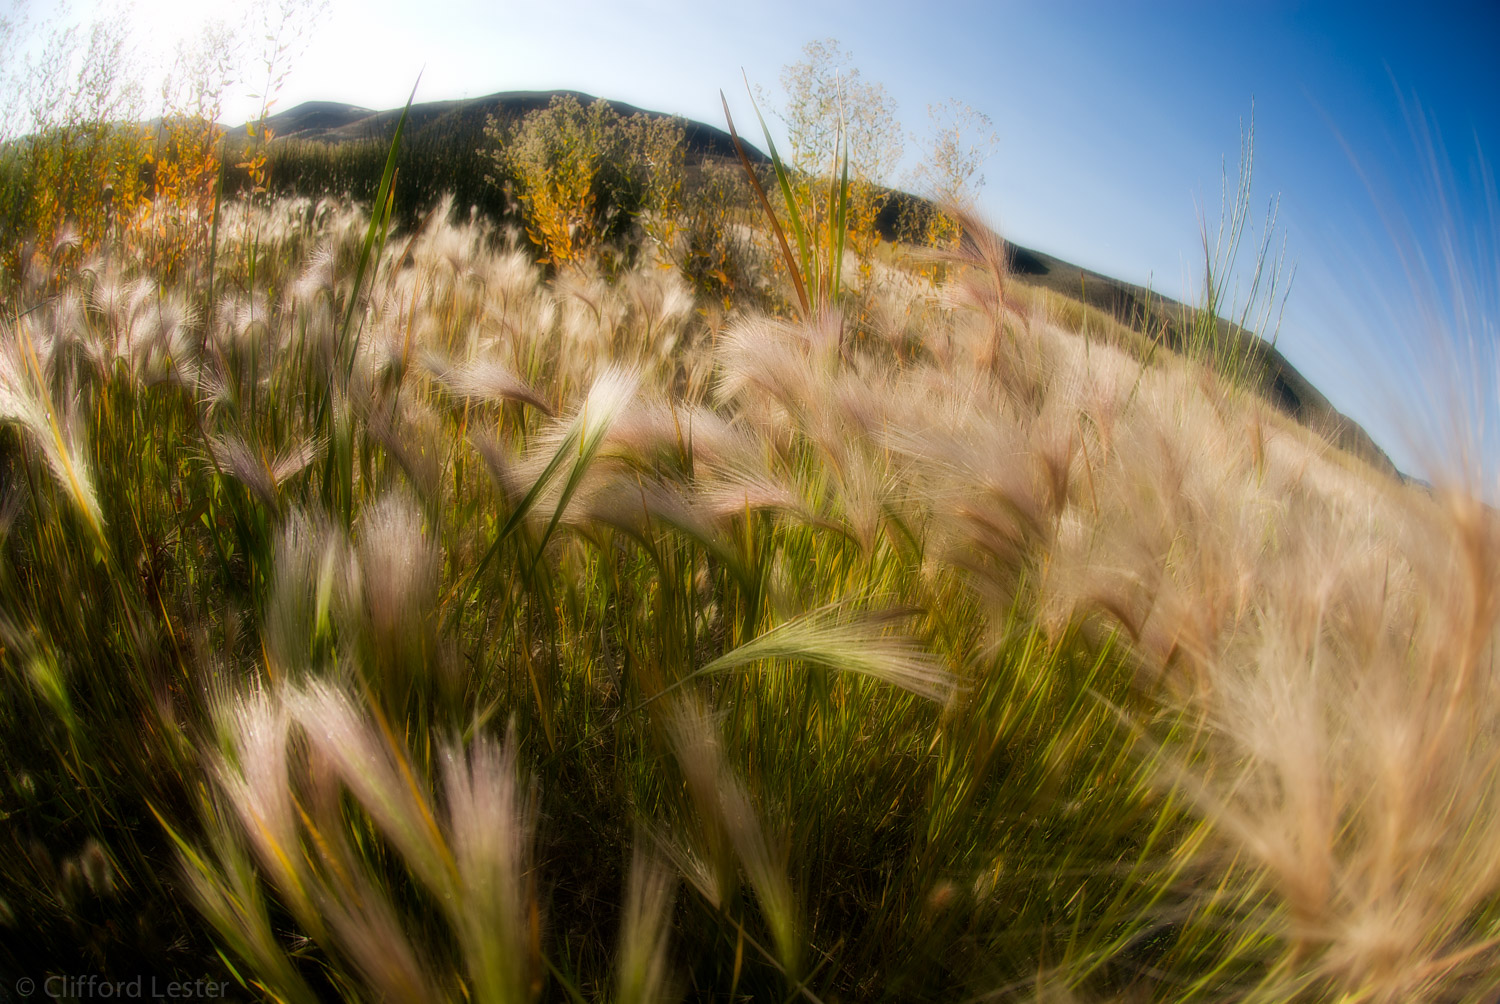 Foxtails - Carson Valley